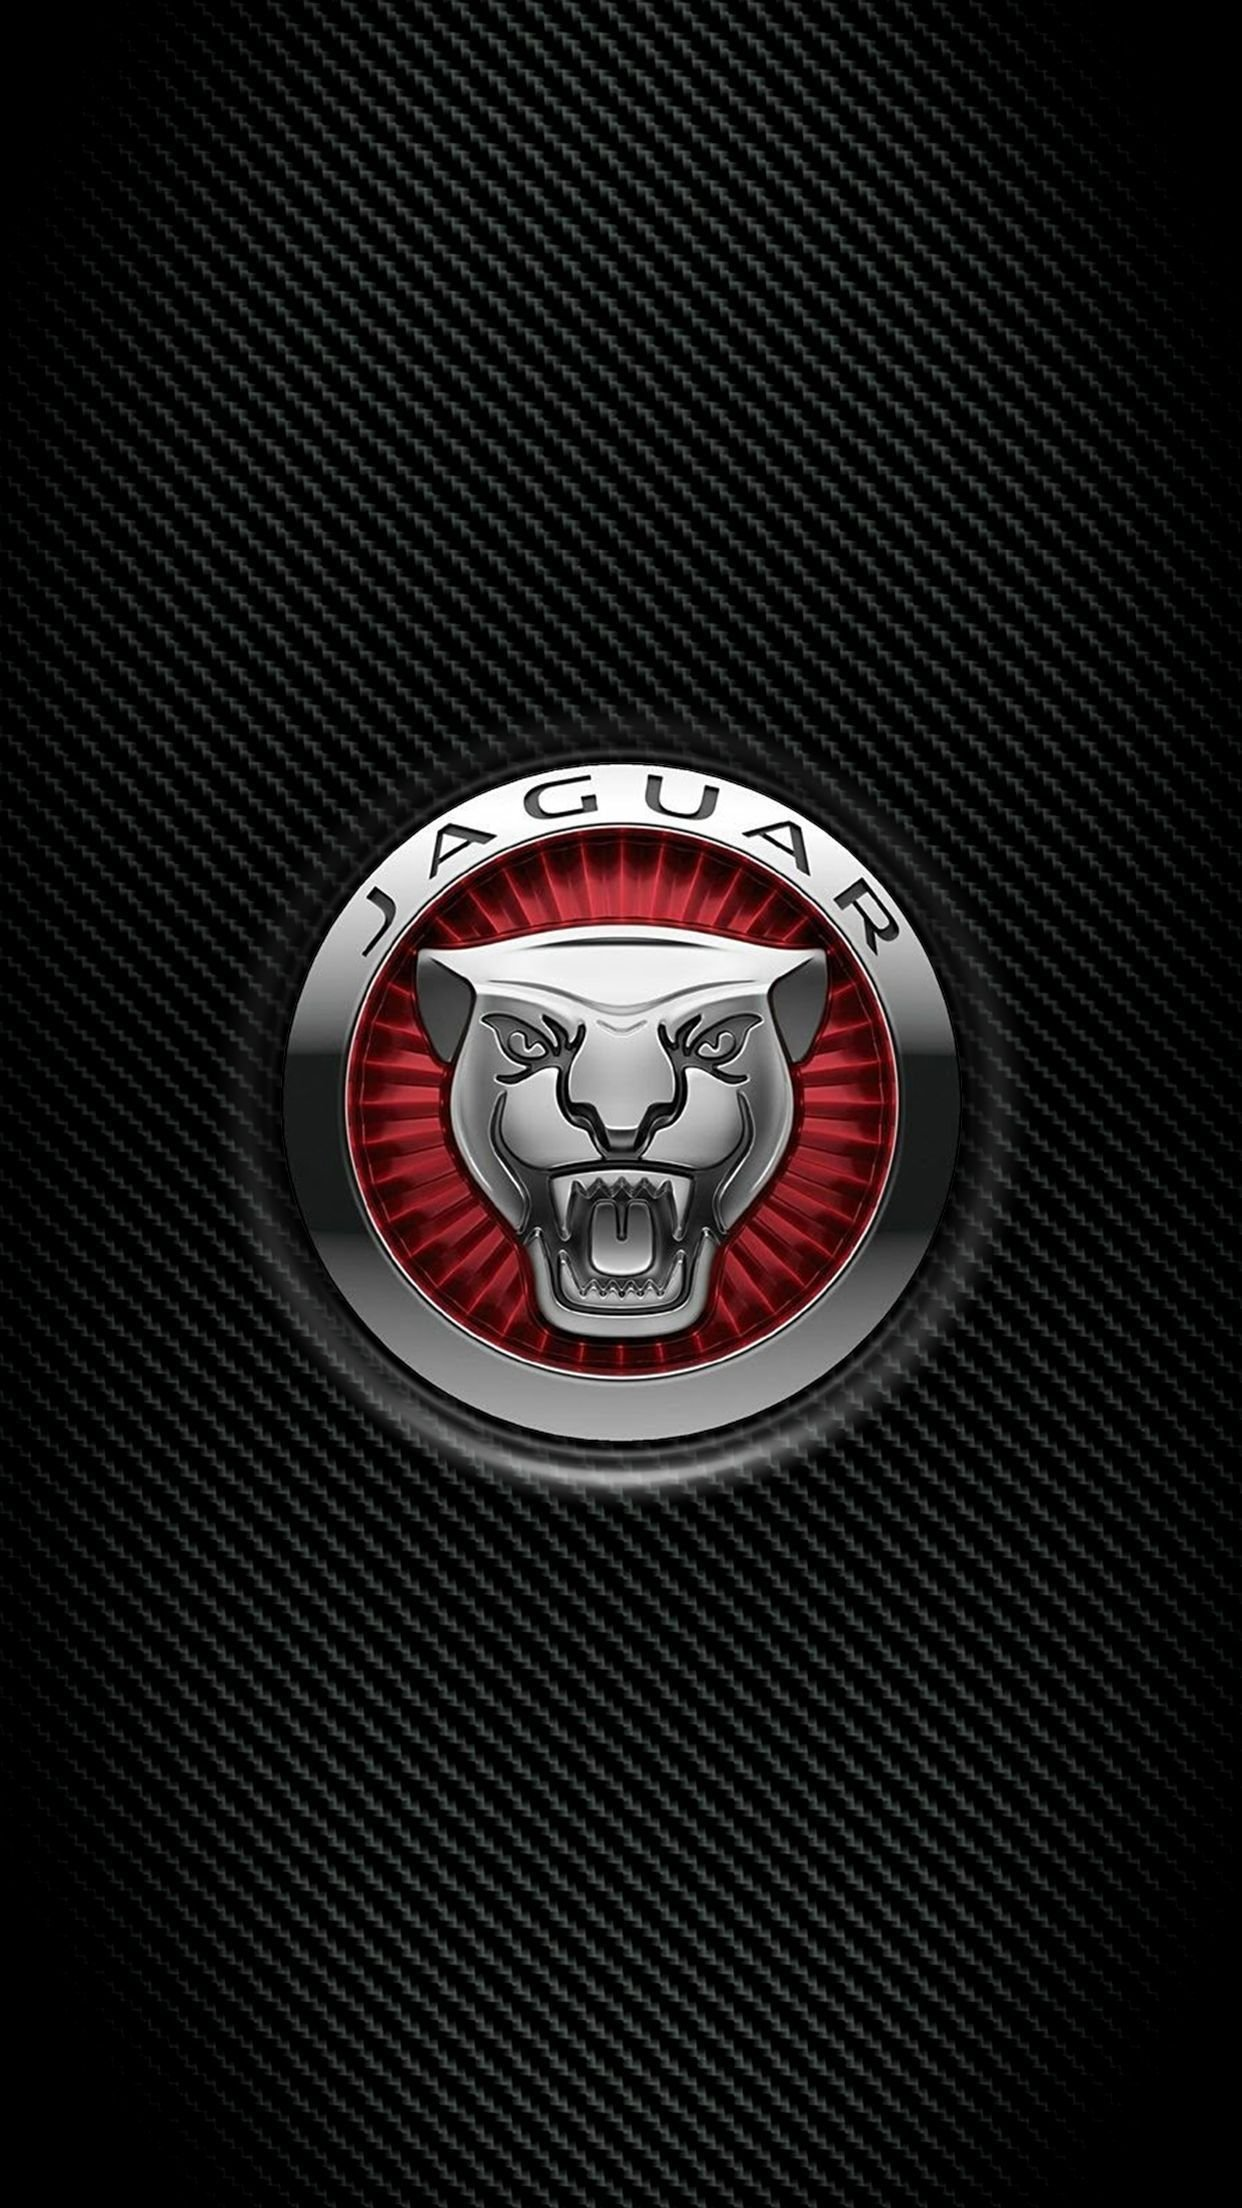 New Jaguar Logo Wallpaper Screen Saver For Smartphone On This Month